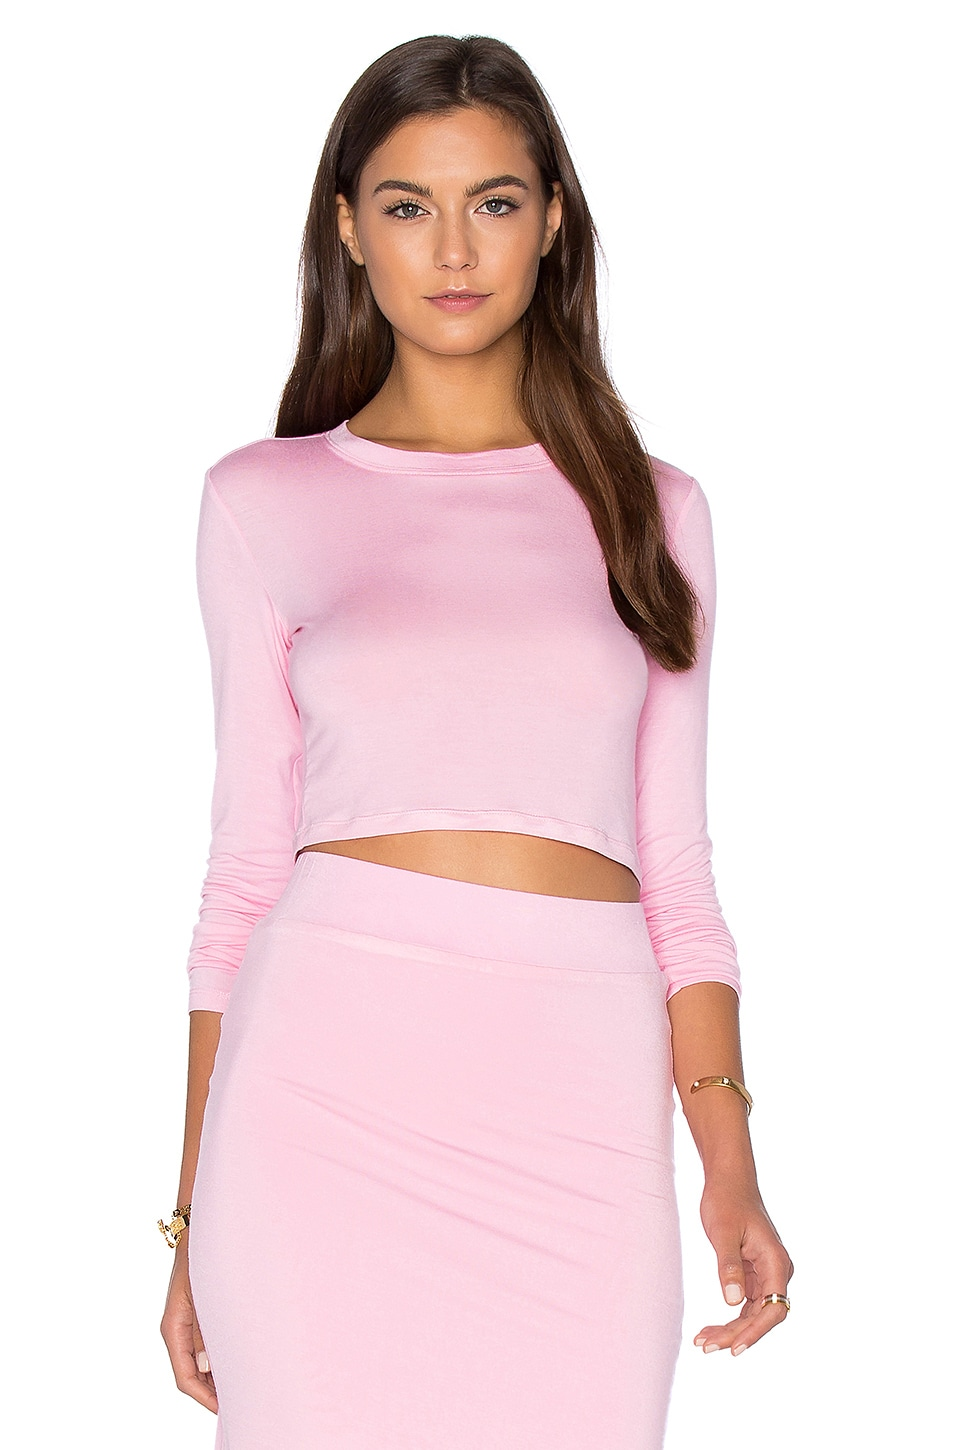 BLQ BASIQ x REVOLVE Long Sleeve Crop Top in Petal Pink